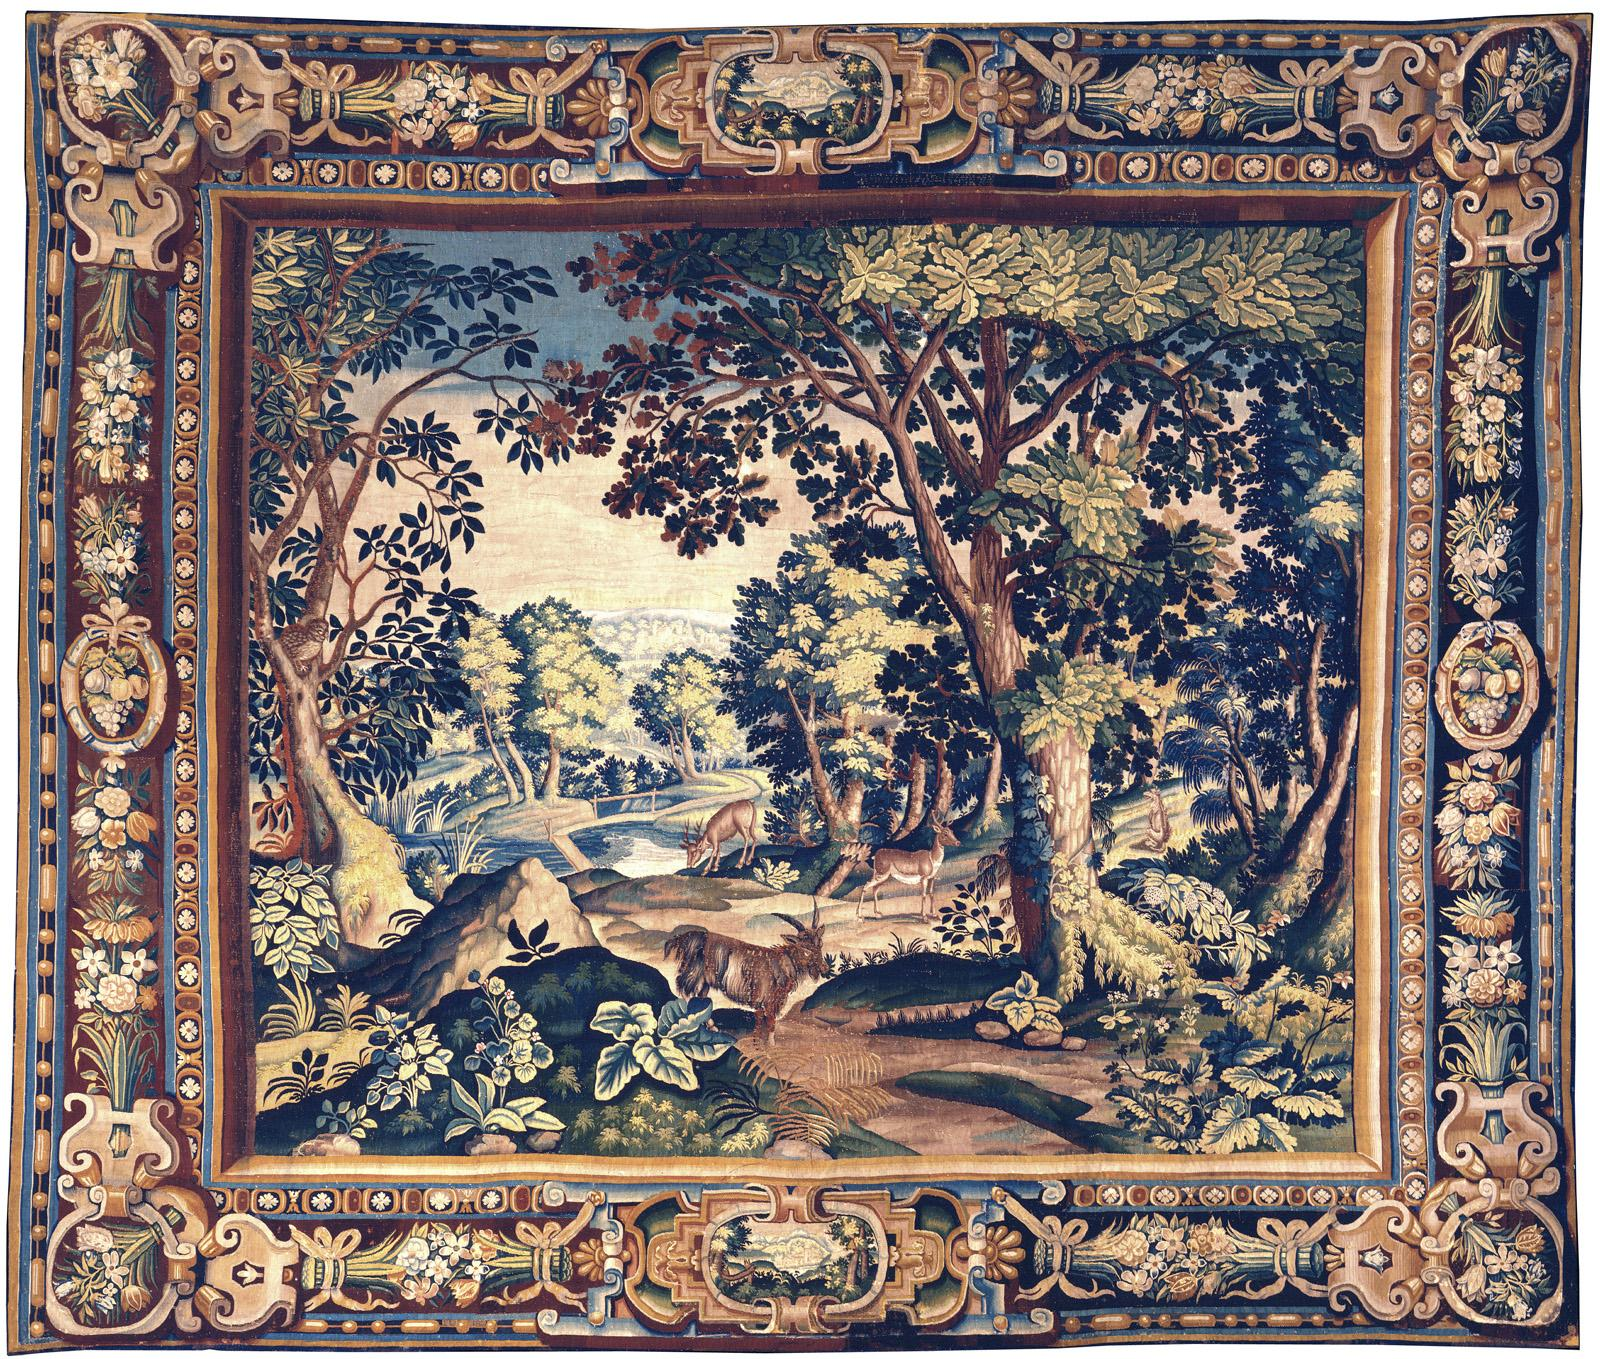 Landscape Tapestry with Goat